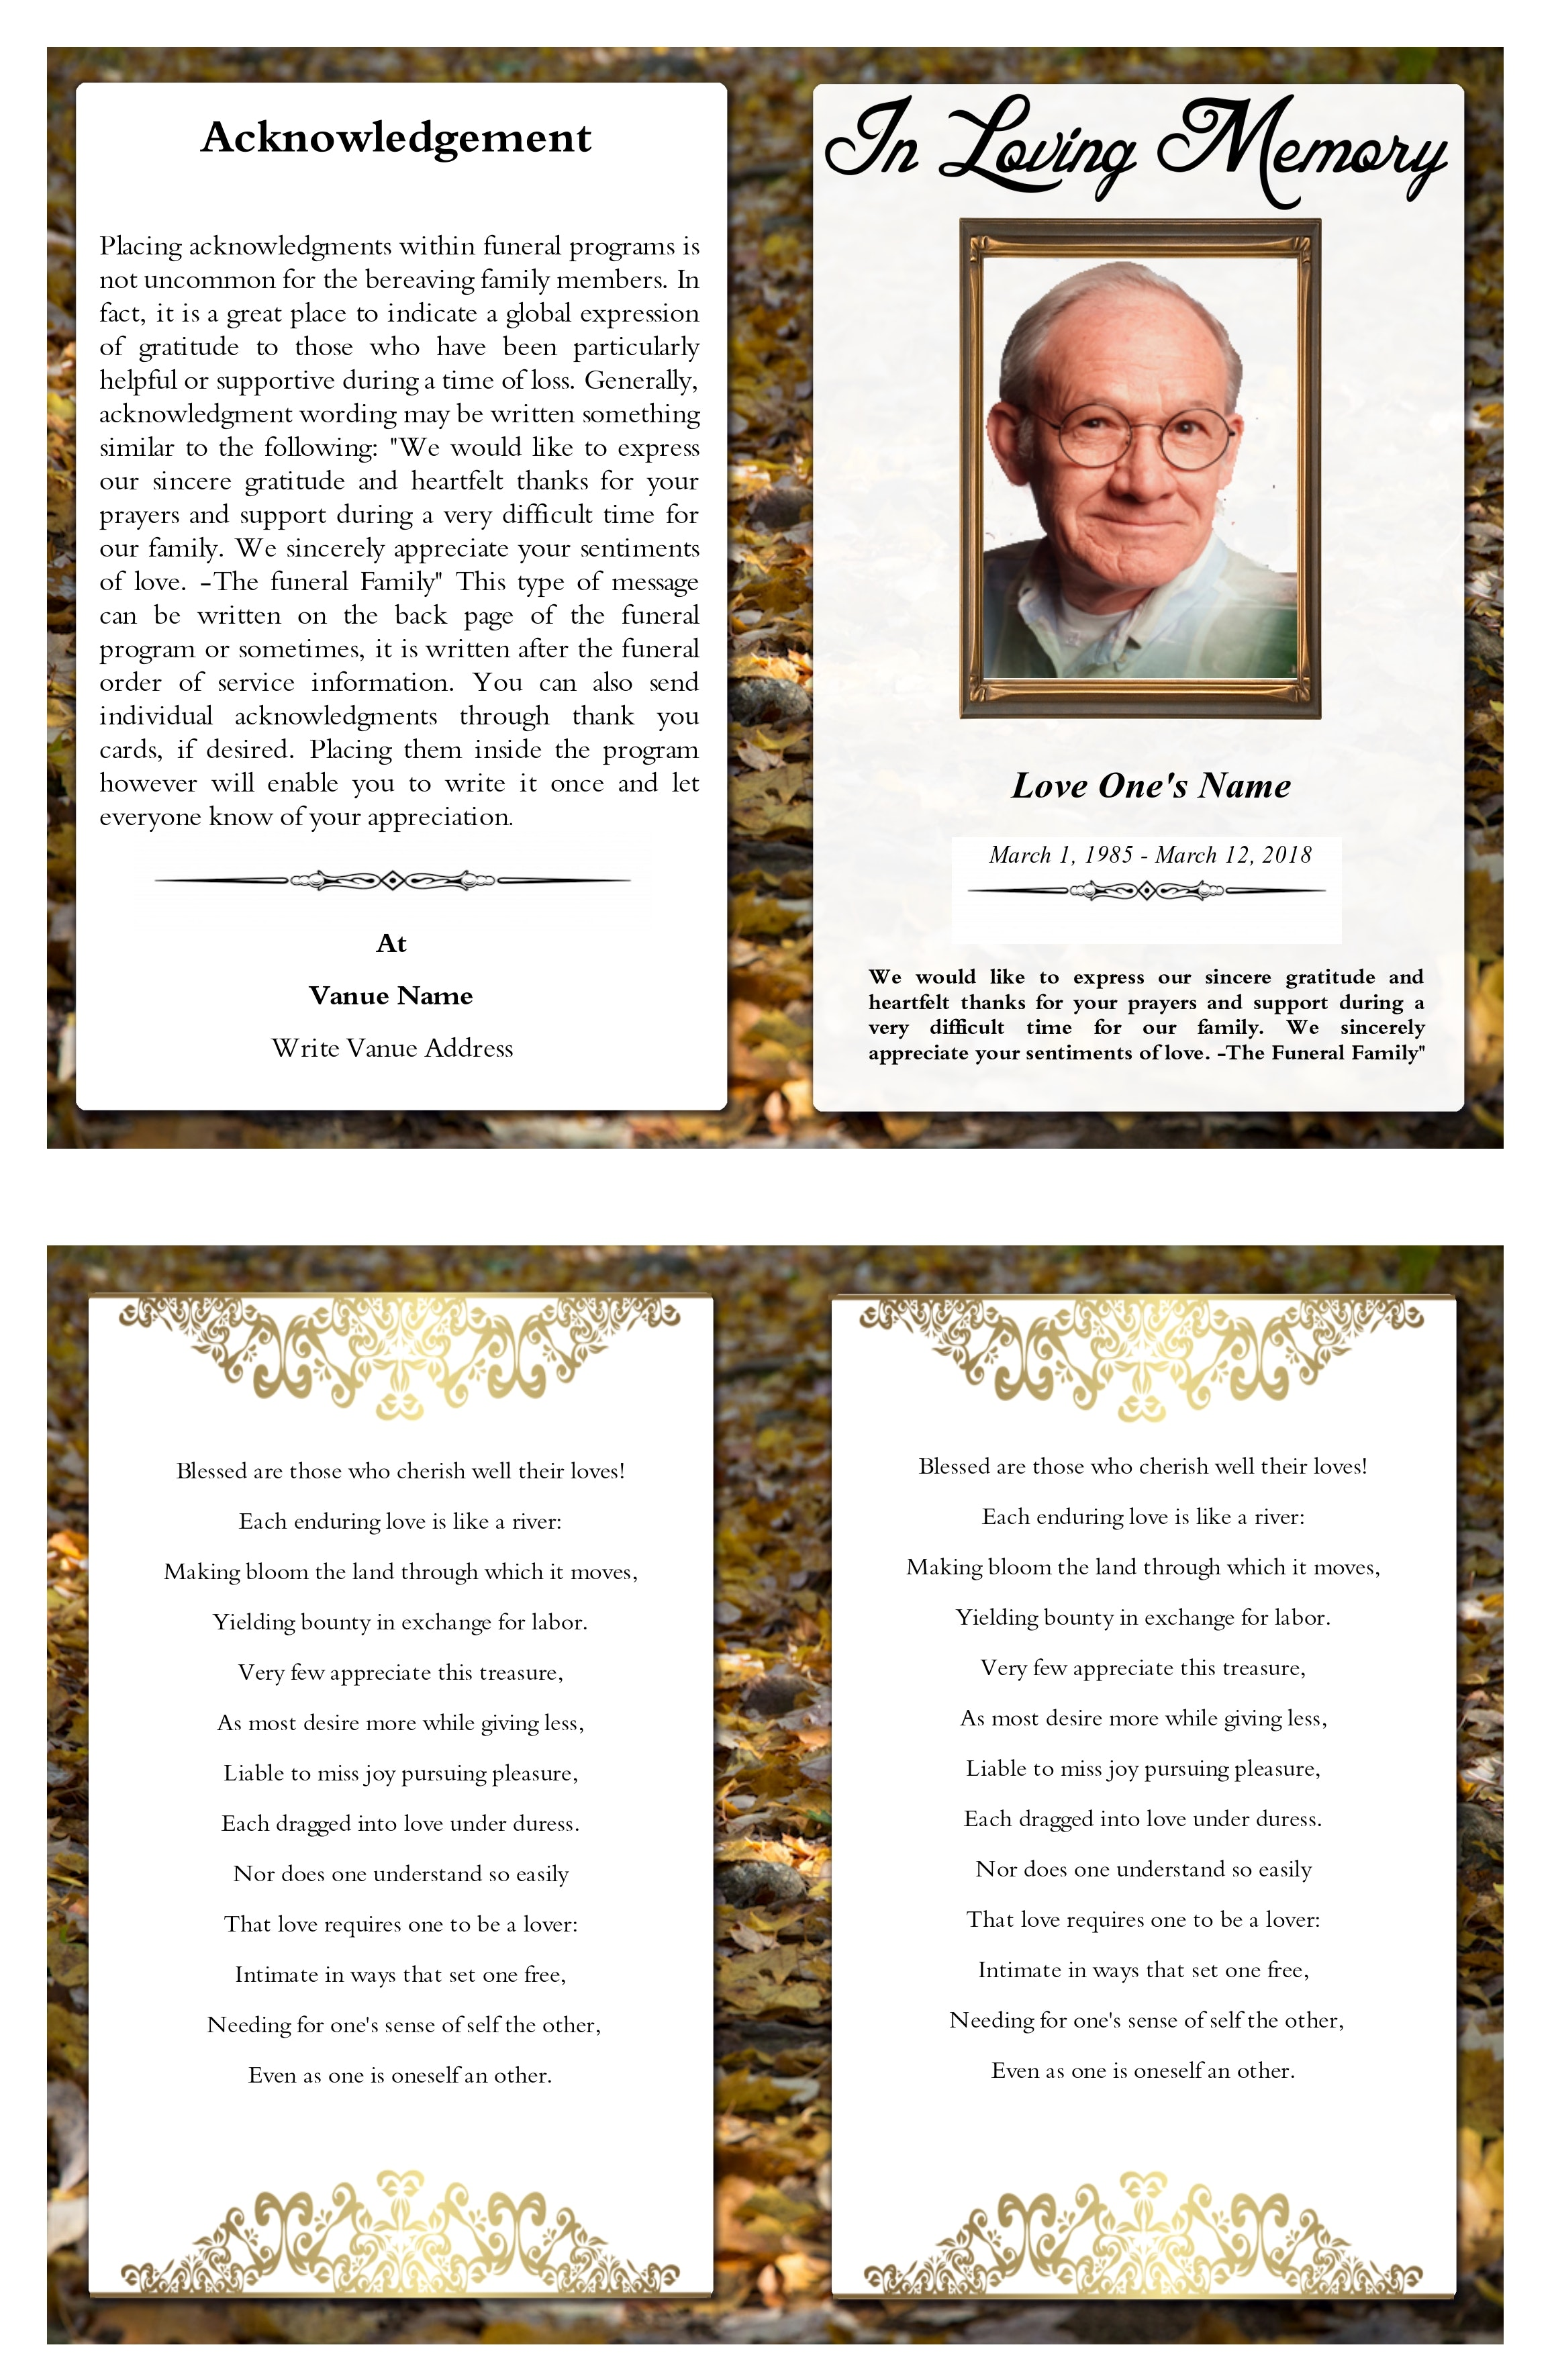 Free Stock Photo Of Funeral Program Template Funeral Program Templates